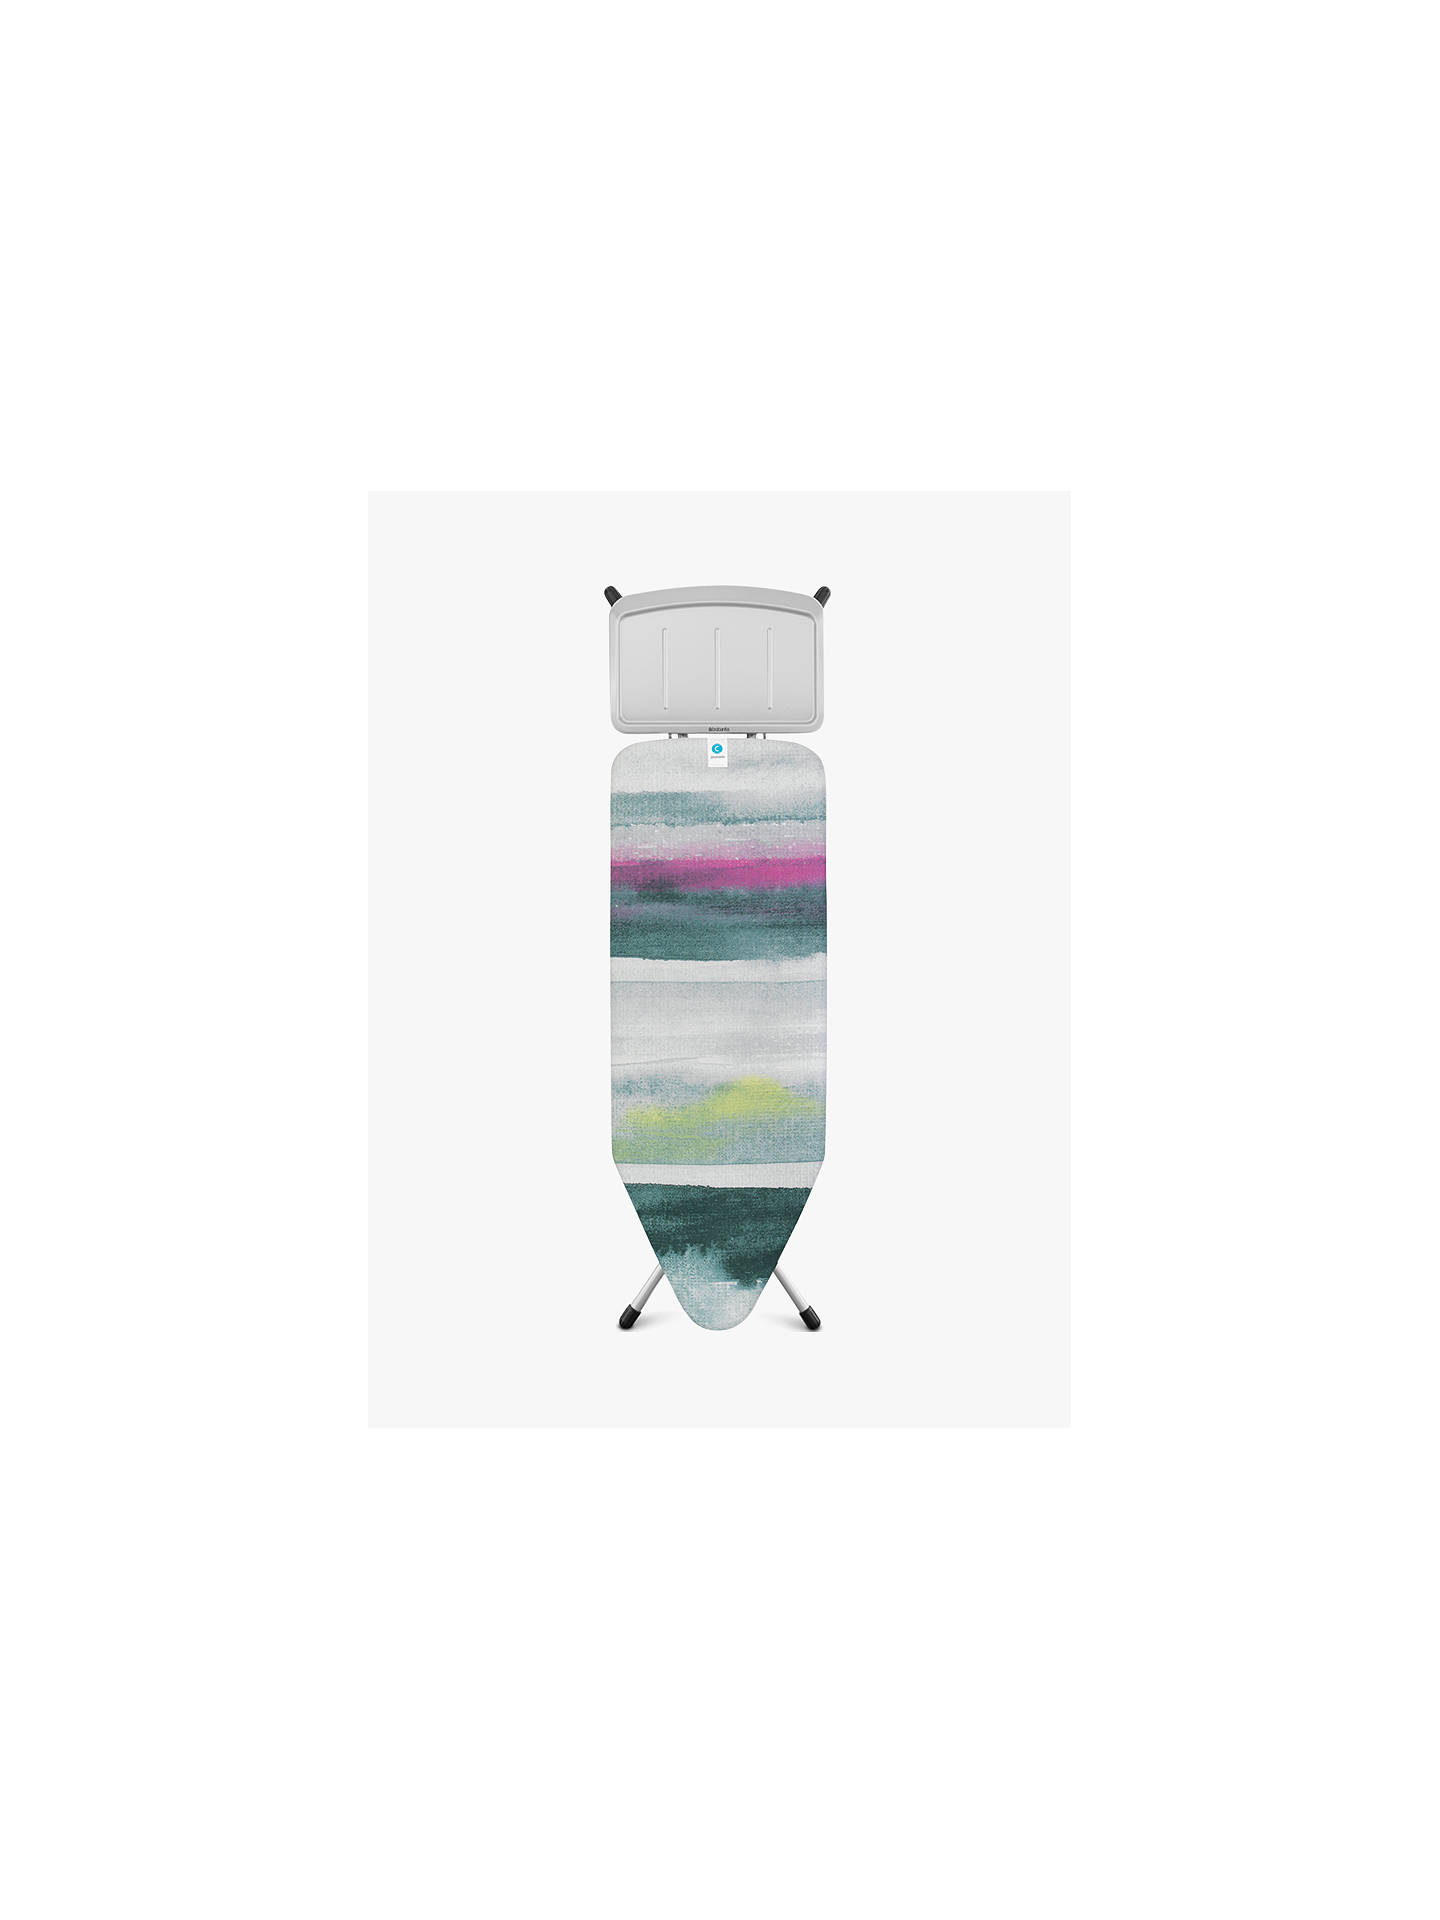 BuyBrabantia Morning Breeze Ironing Board, L124 x W45cm Online at johnlewis.com